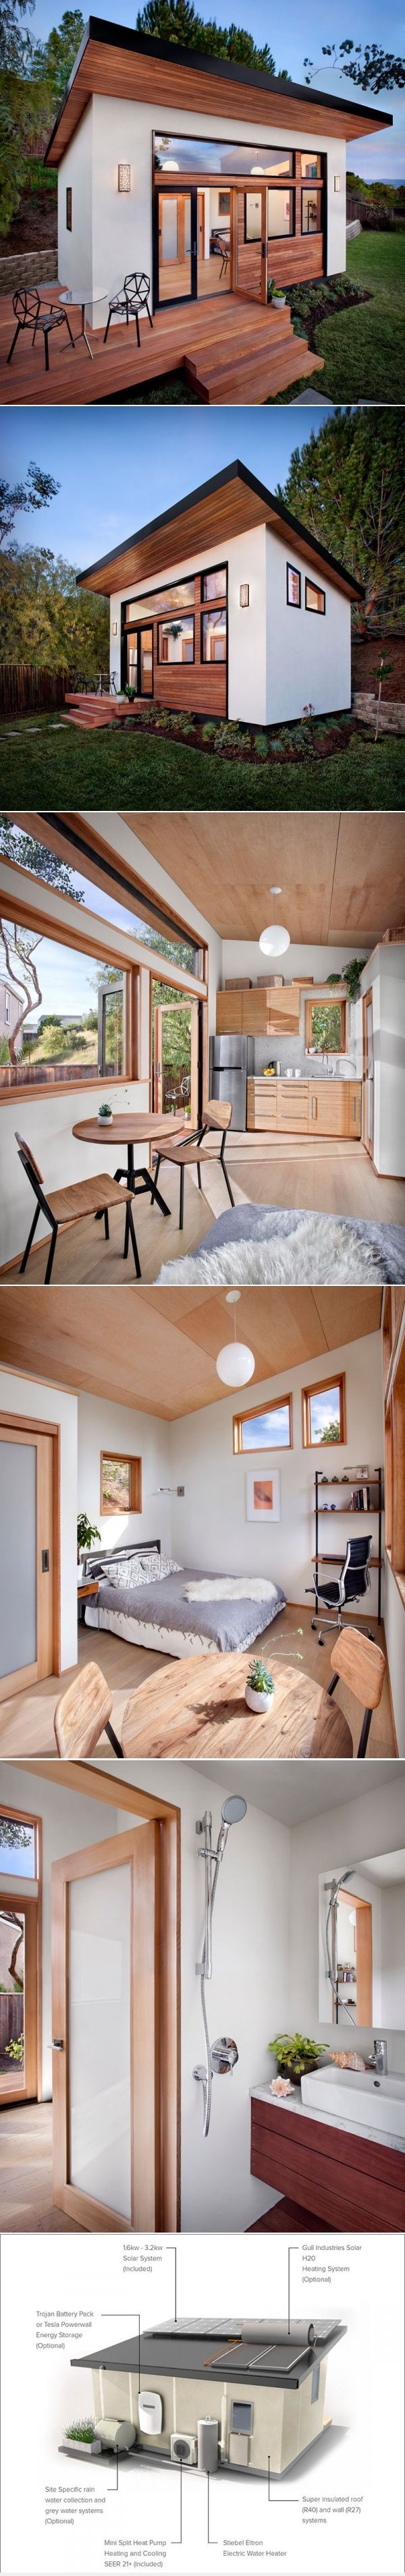 1000 images about tiny house on pinterest tiny house on for Small guest house ideas